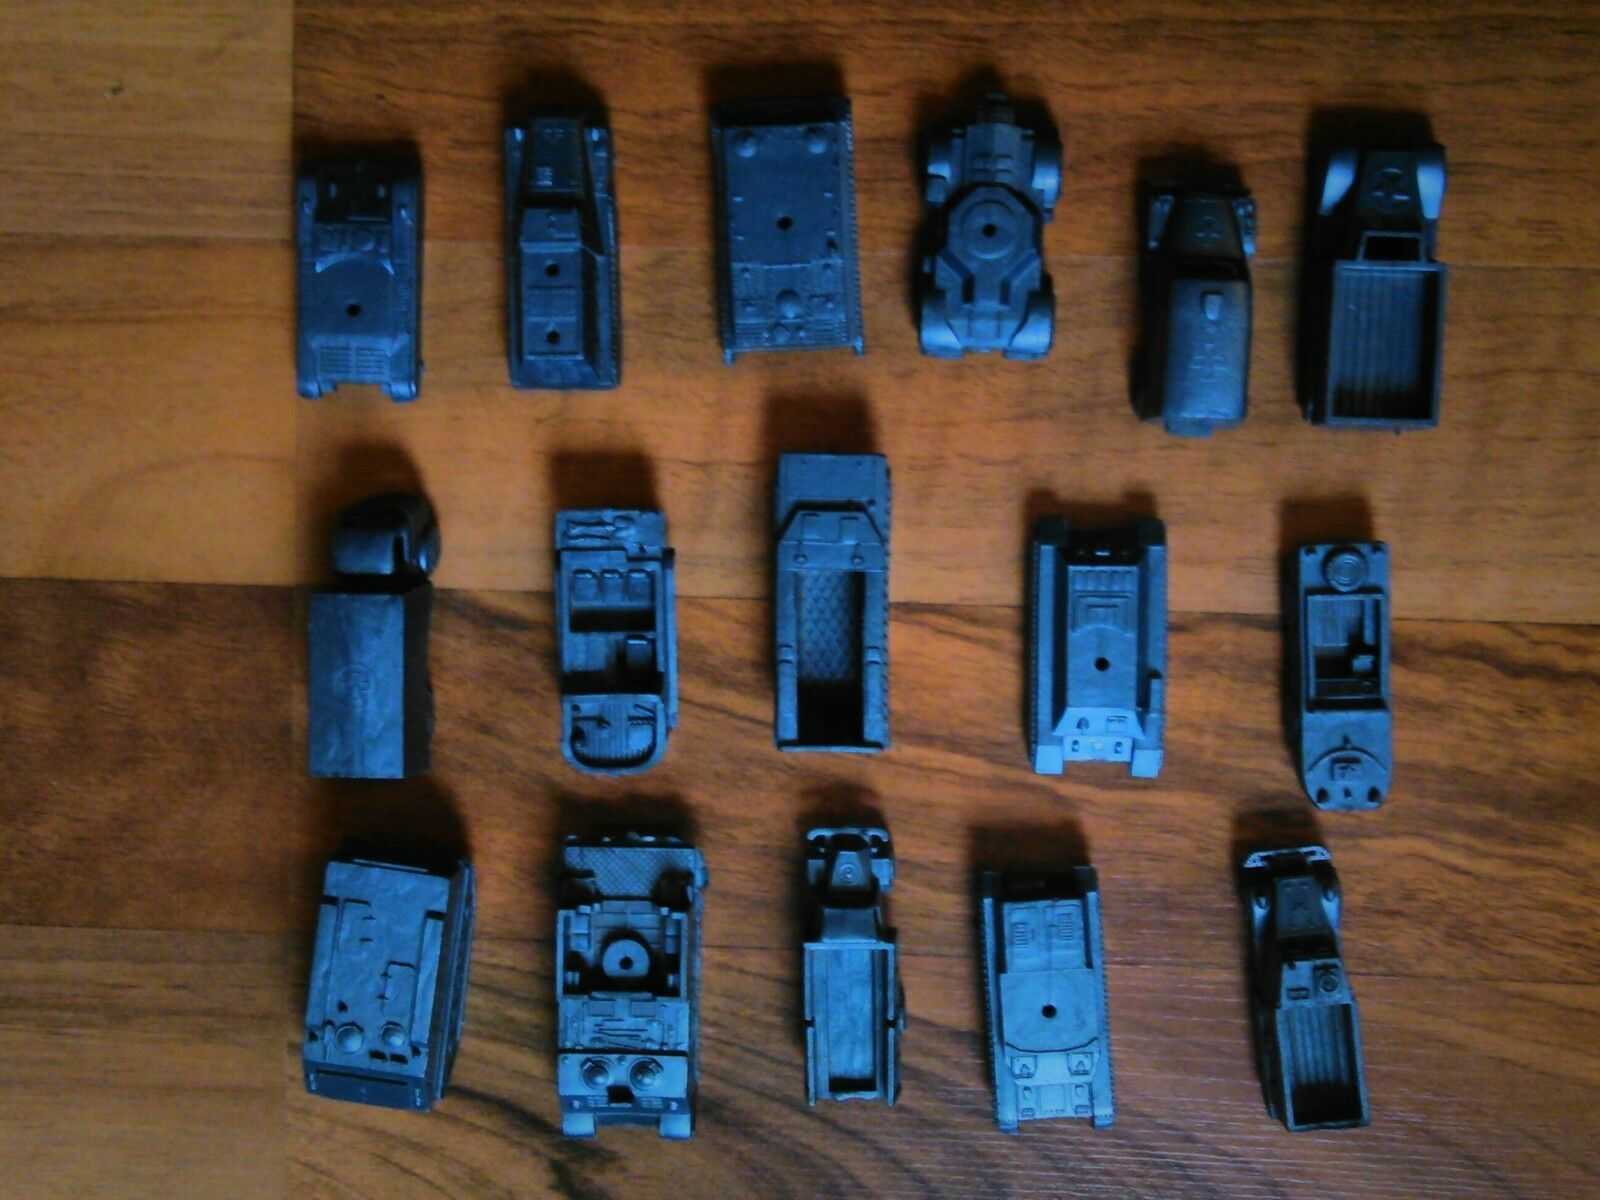 Old vintage MPC military or army vehicles cars tanks lot small miniature blueish